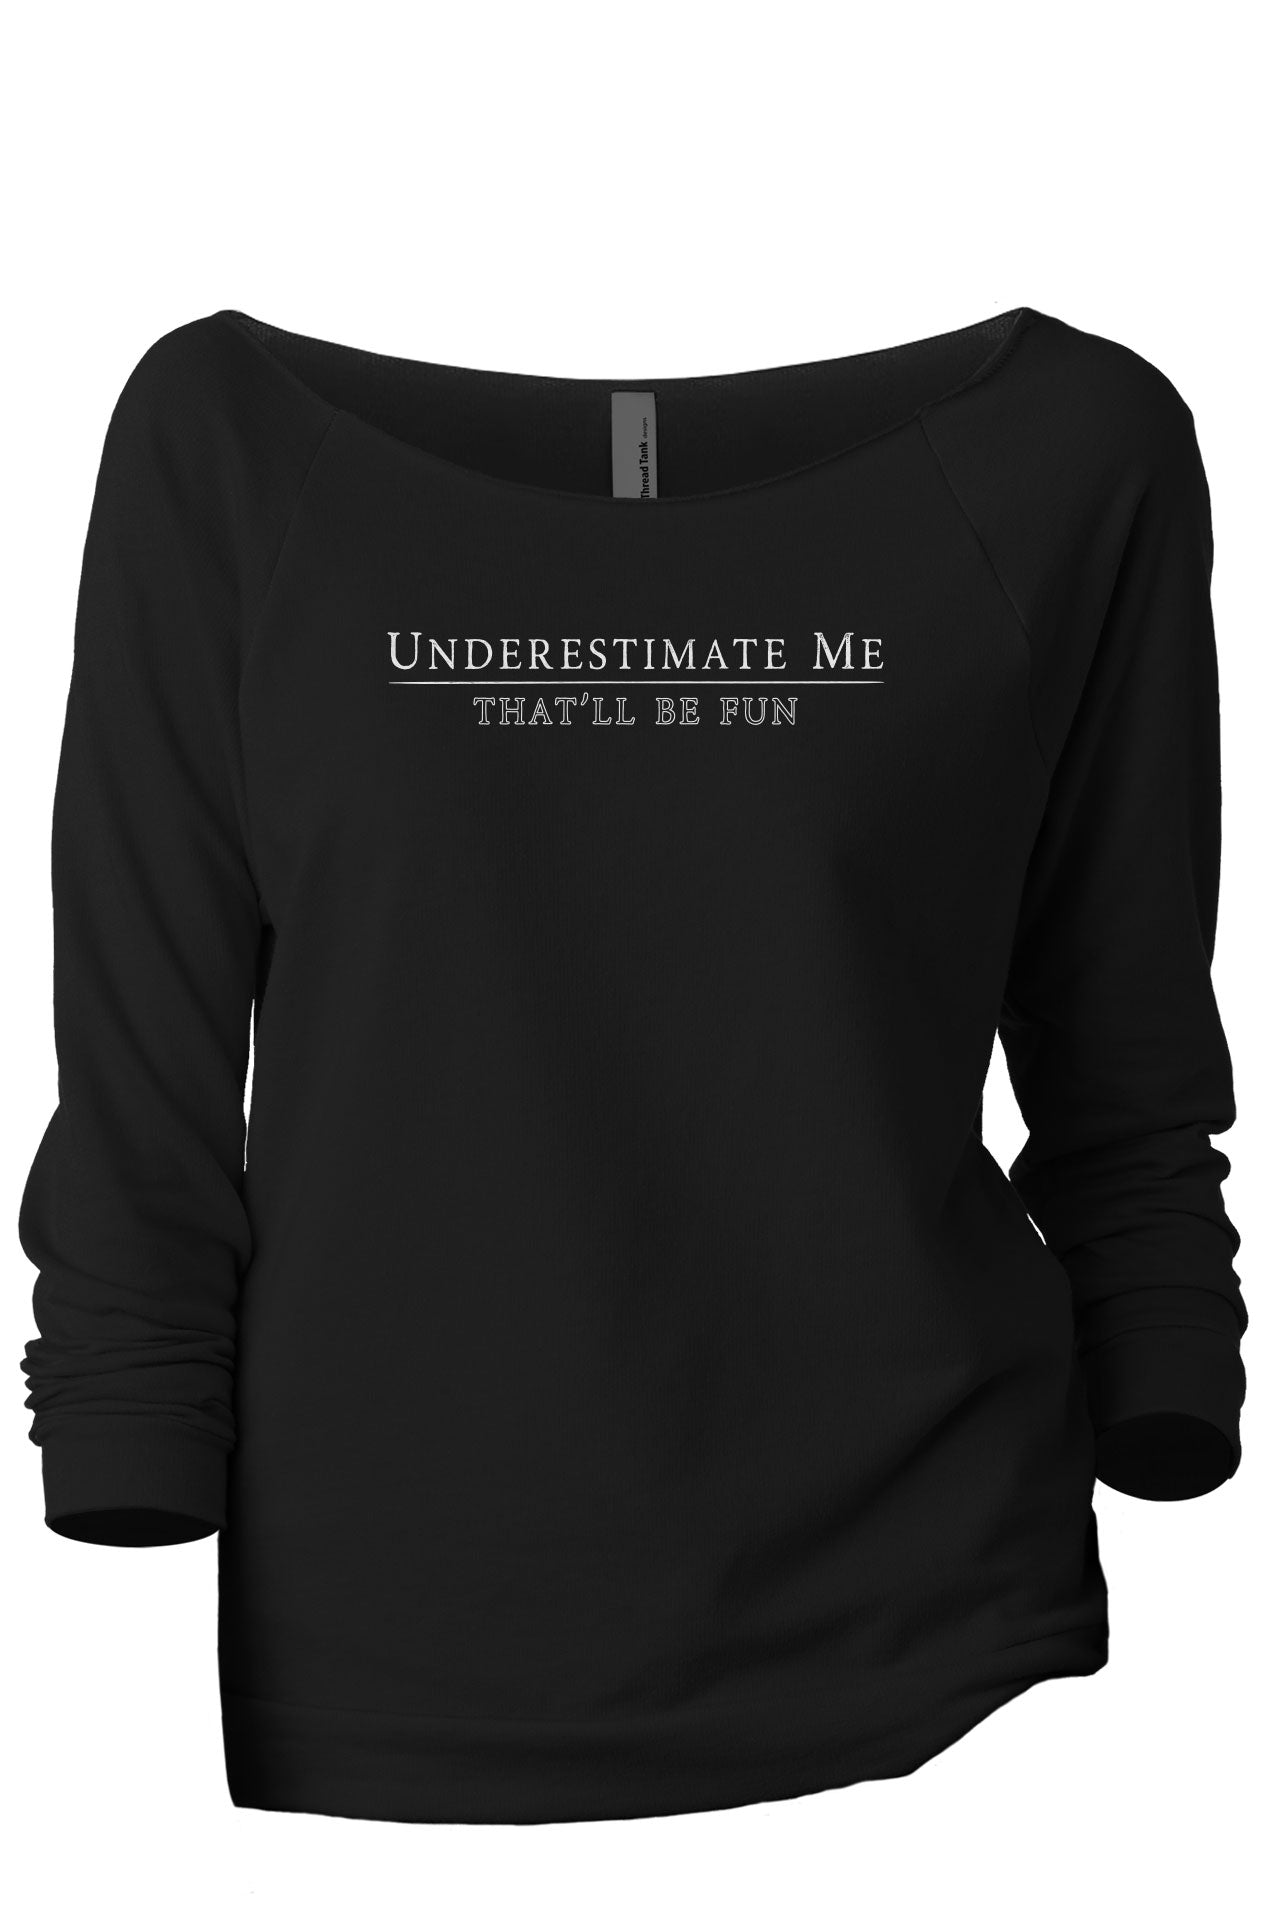 Underestimate Me - That'll Be Fun Women's Graphic Printed Lightweight Slouchy 3/4 Sleeves Sweatshirt Sport Black